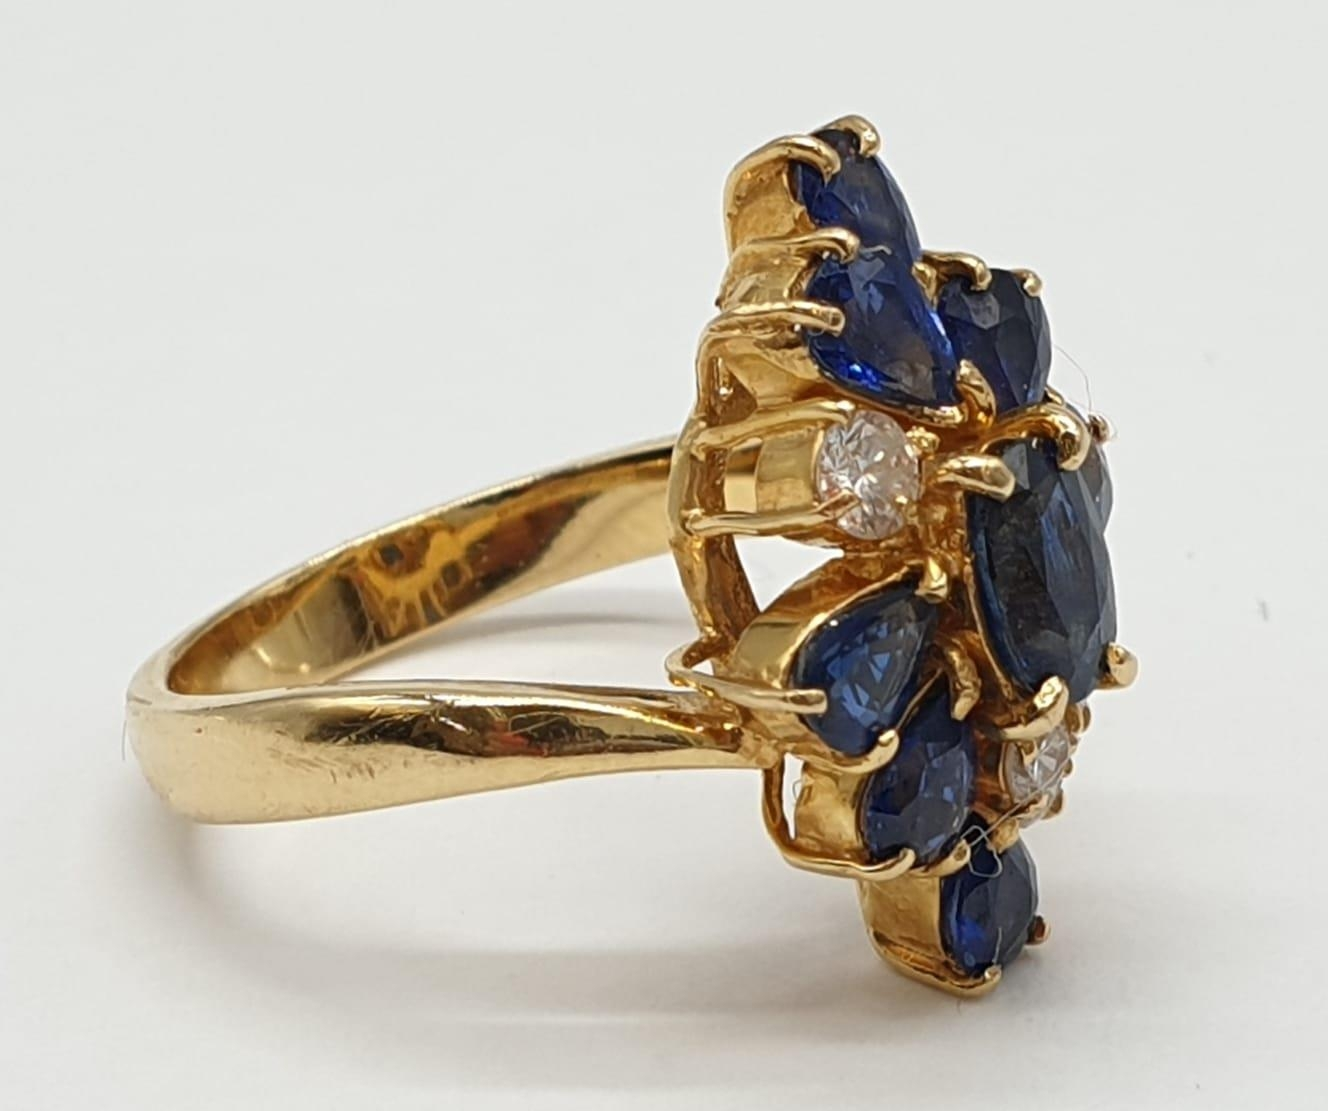 18ct Yellow Gold Cross Over Diamond and Sapphire Ring, Ring Size K, Weight 5.8g - Image 3 of 6